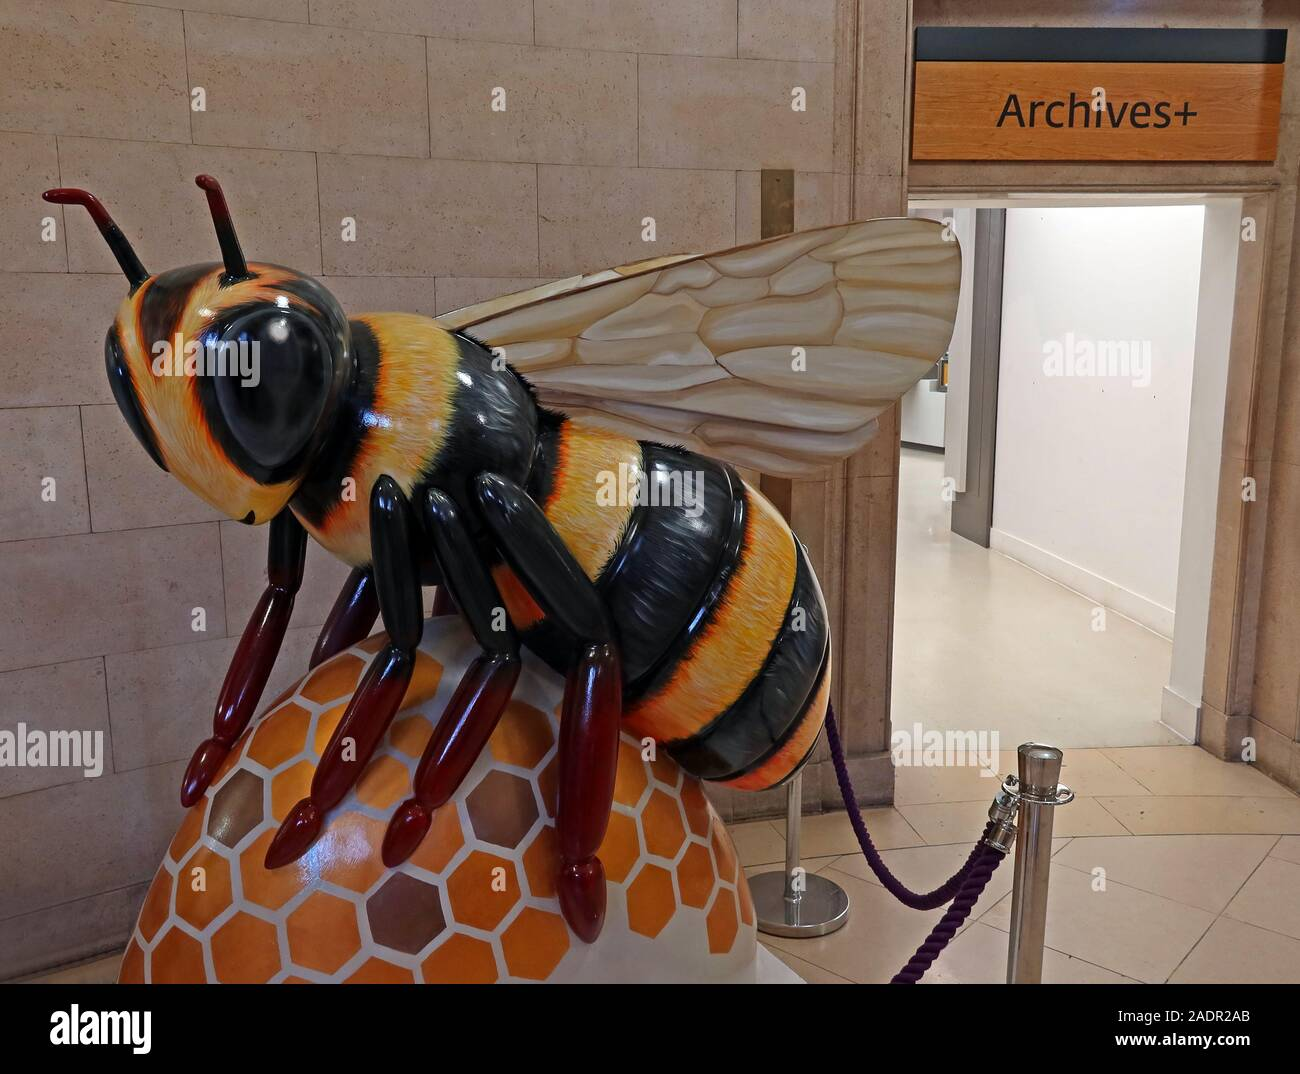 Dieses Stockfoto: Bee in the City, Manchester Bee, Outside Manchester Archives, Central Library, St Peter's Square, Manchester, England, UK, M2 5PD - 2ADR2A